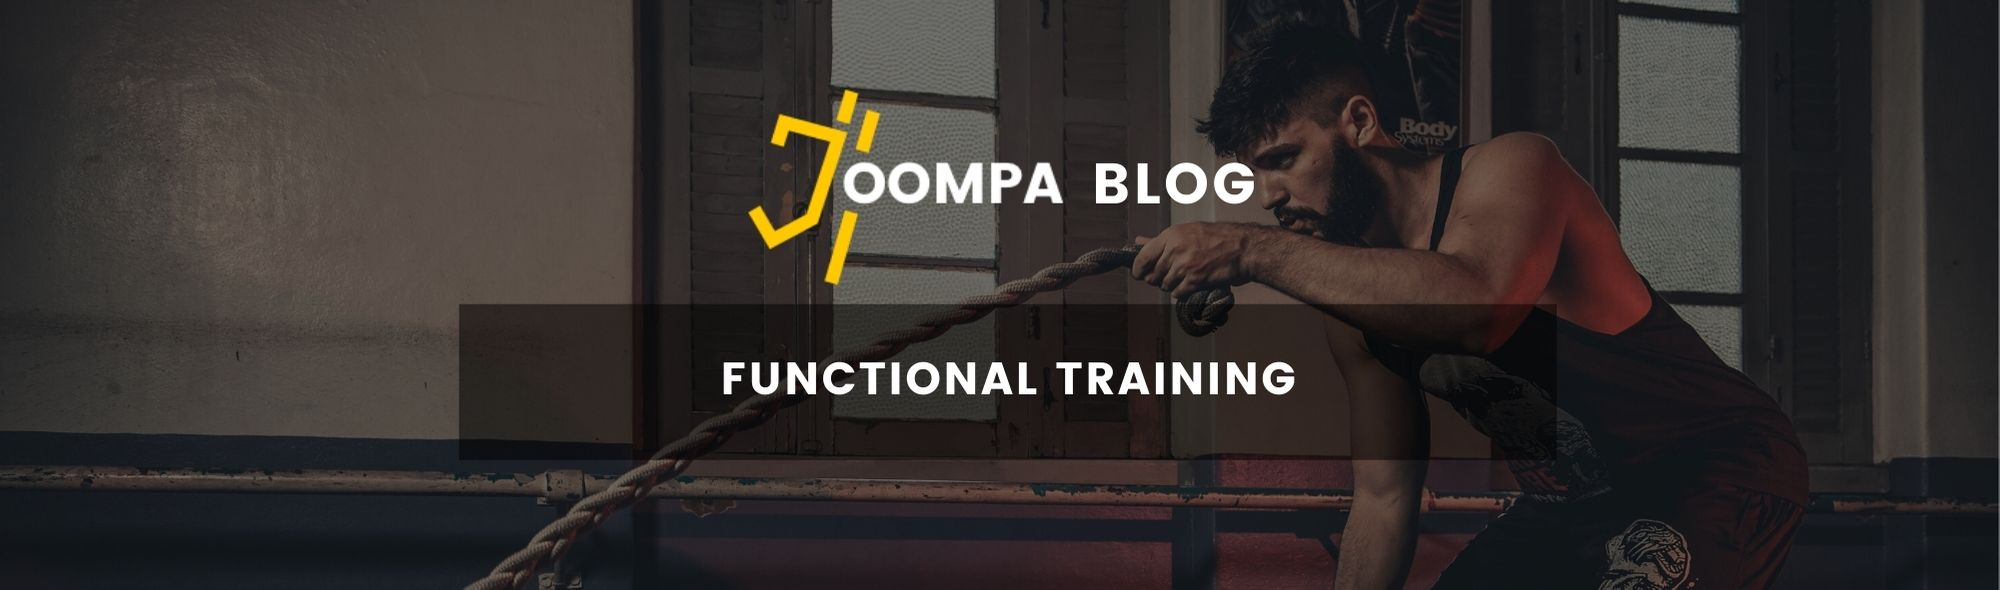 Fun-ctional Training